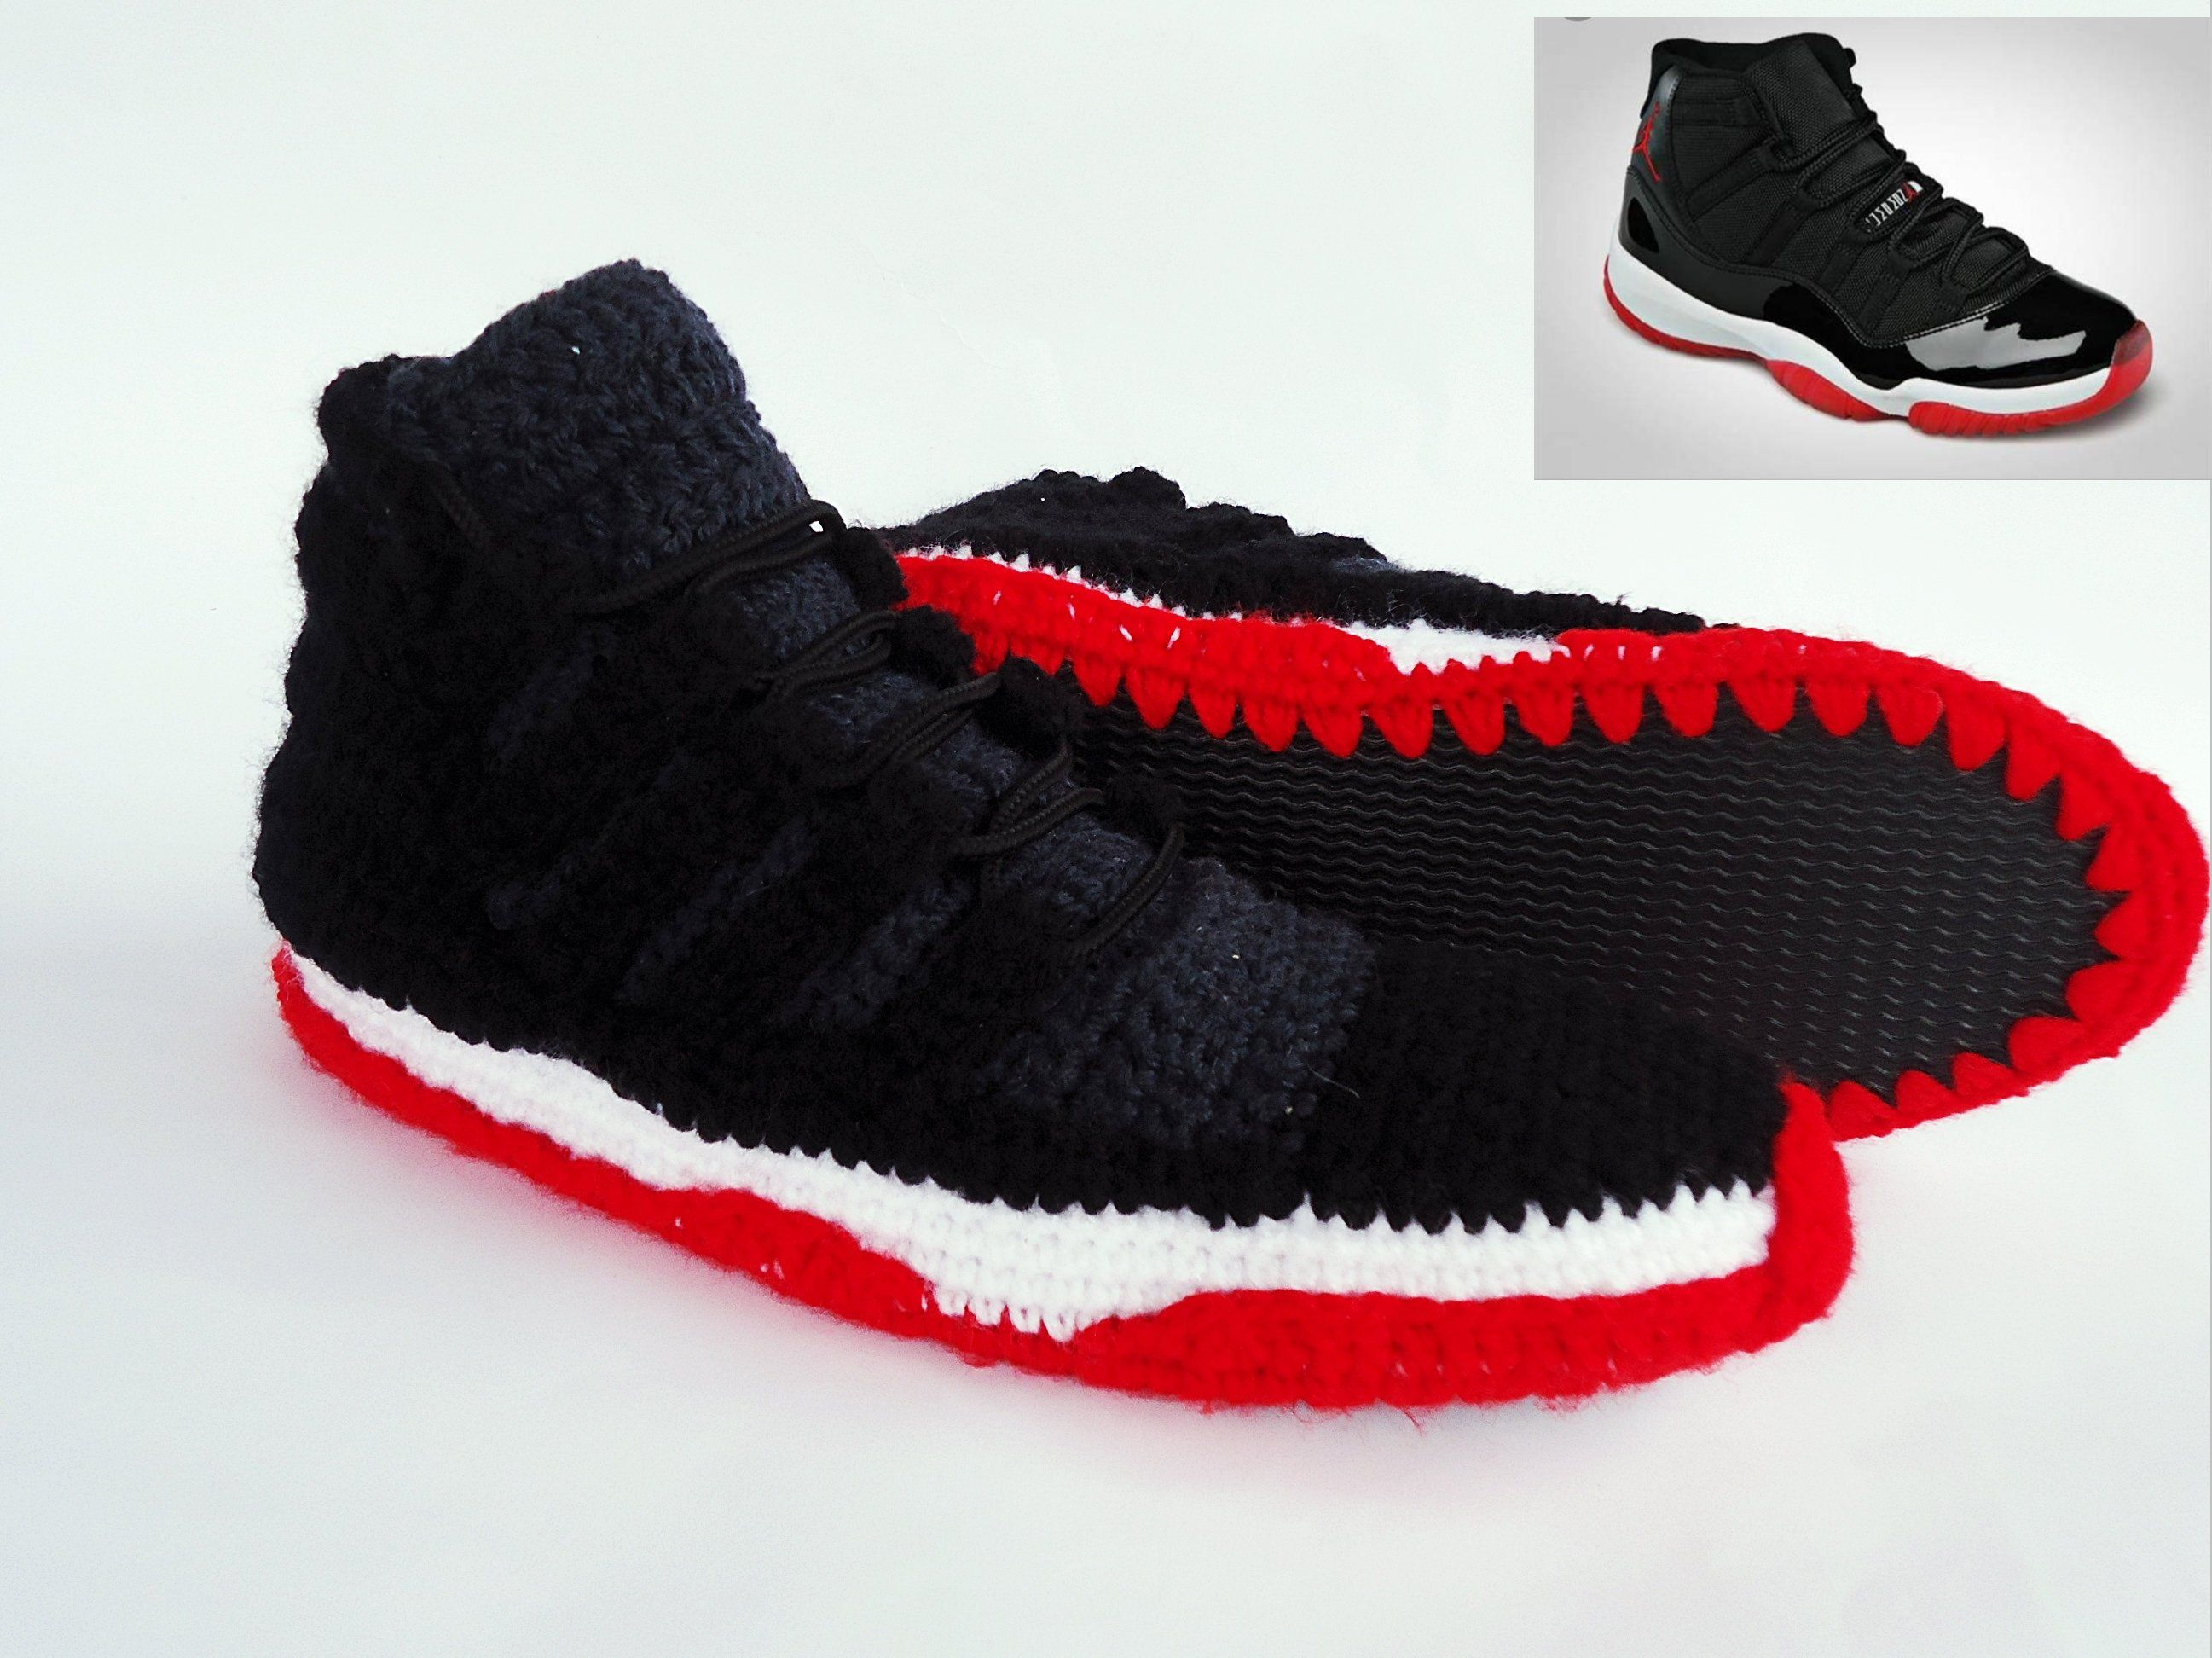 uk availability aabbc 08009 Air Jordan 11, Retro Shoes, Michael Jordan Shoes, Space Jam Shoes, Jordan  11 Red Shoes, Nike Jordan Shoes, Air Jordan 23, Crochet Nike Shoes by  BENIstyle on ...